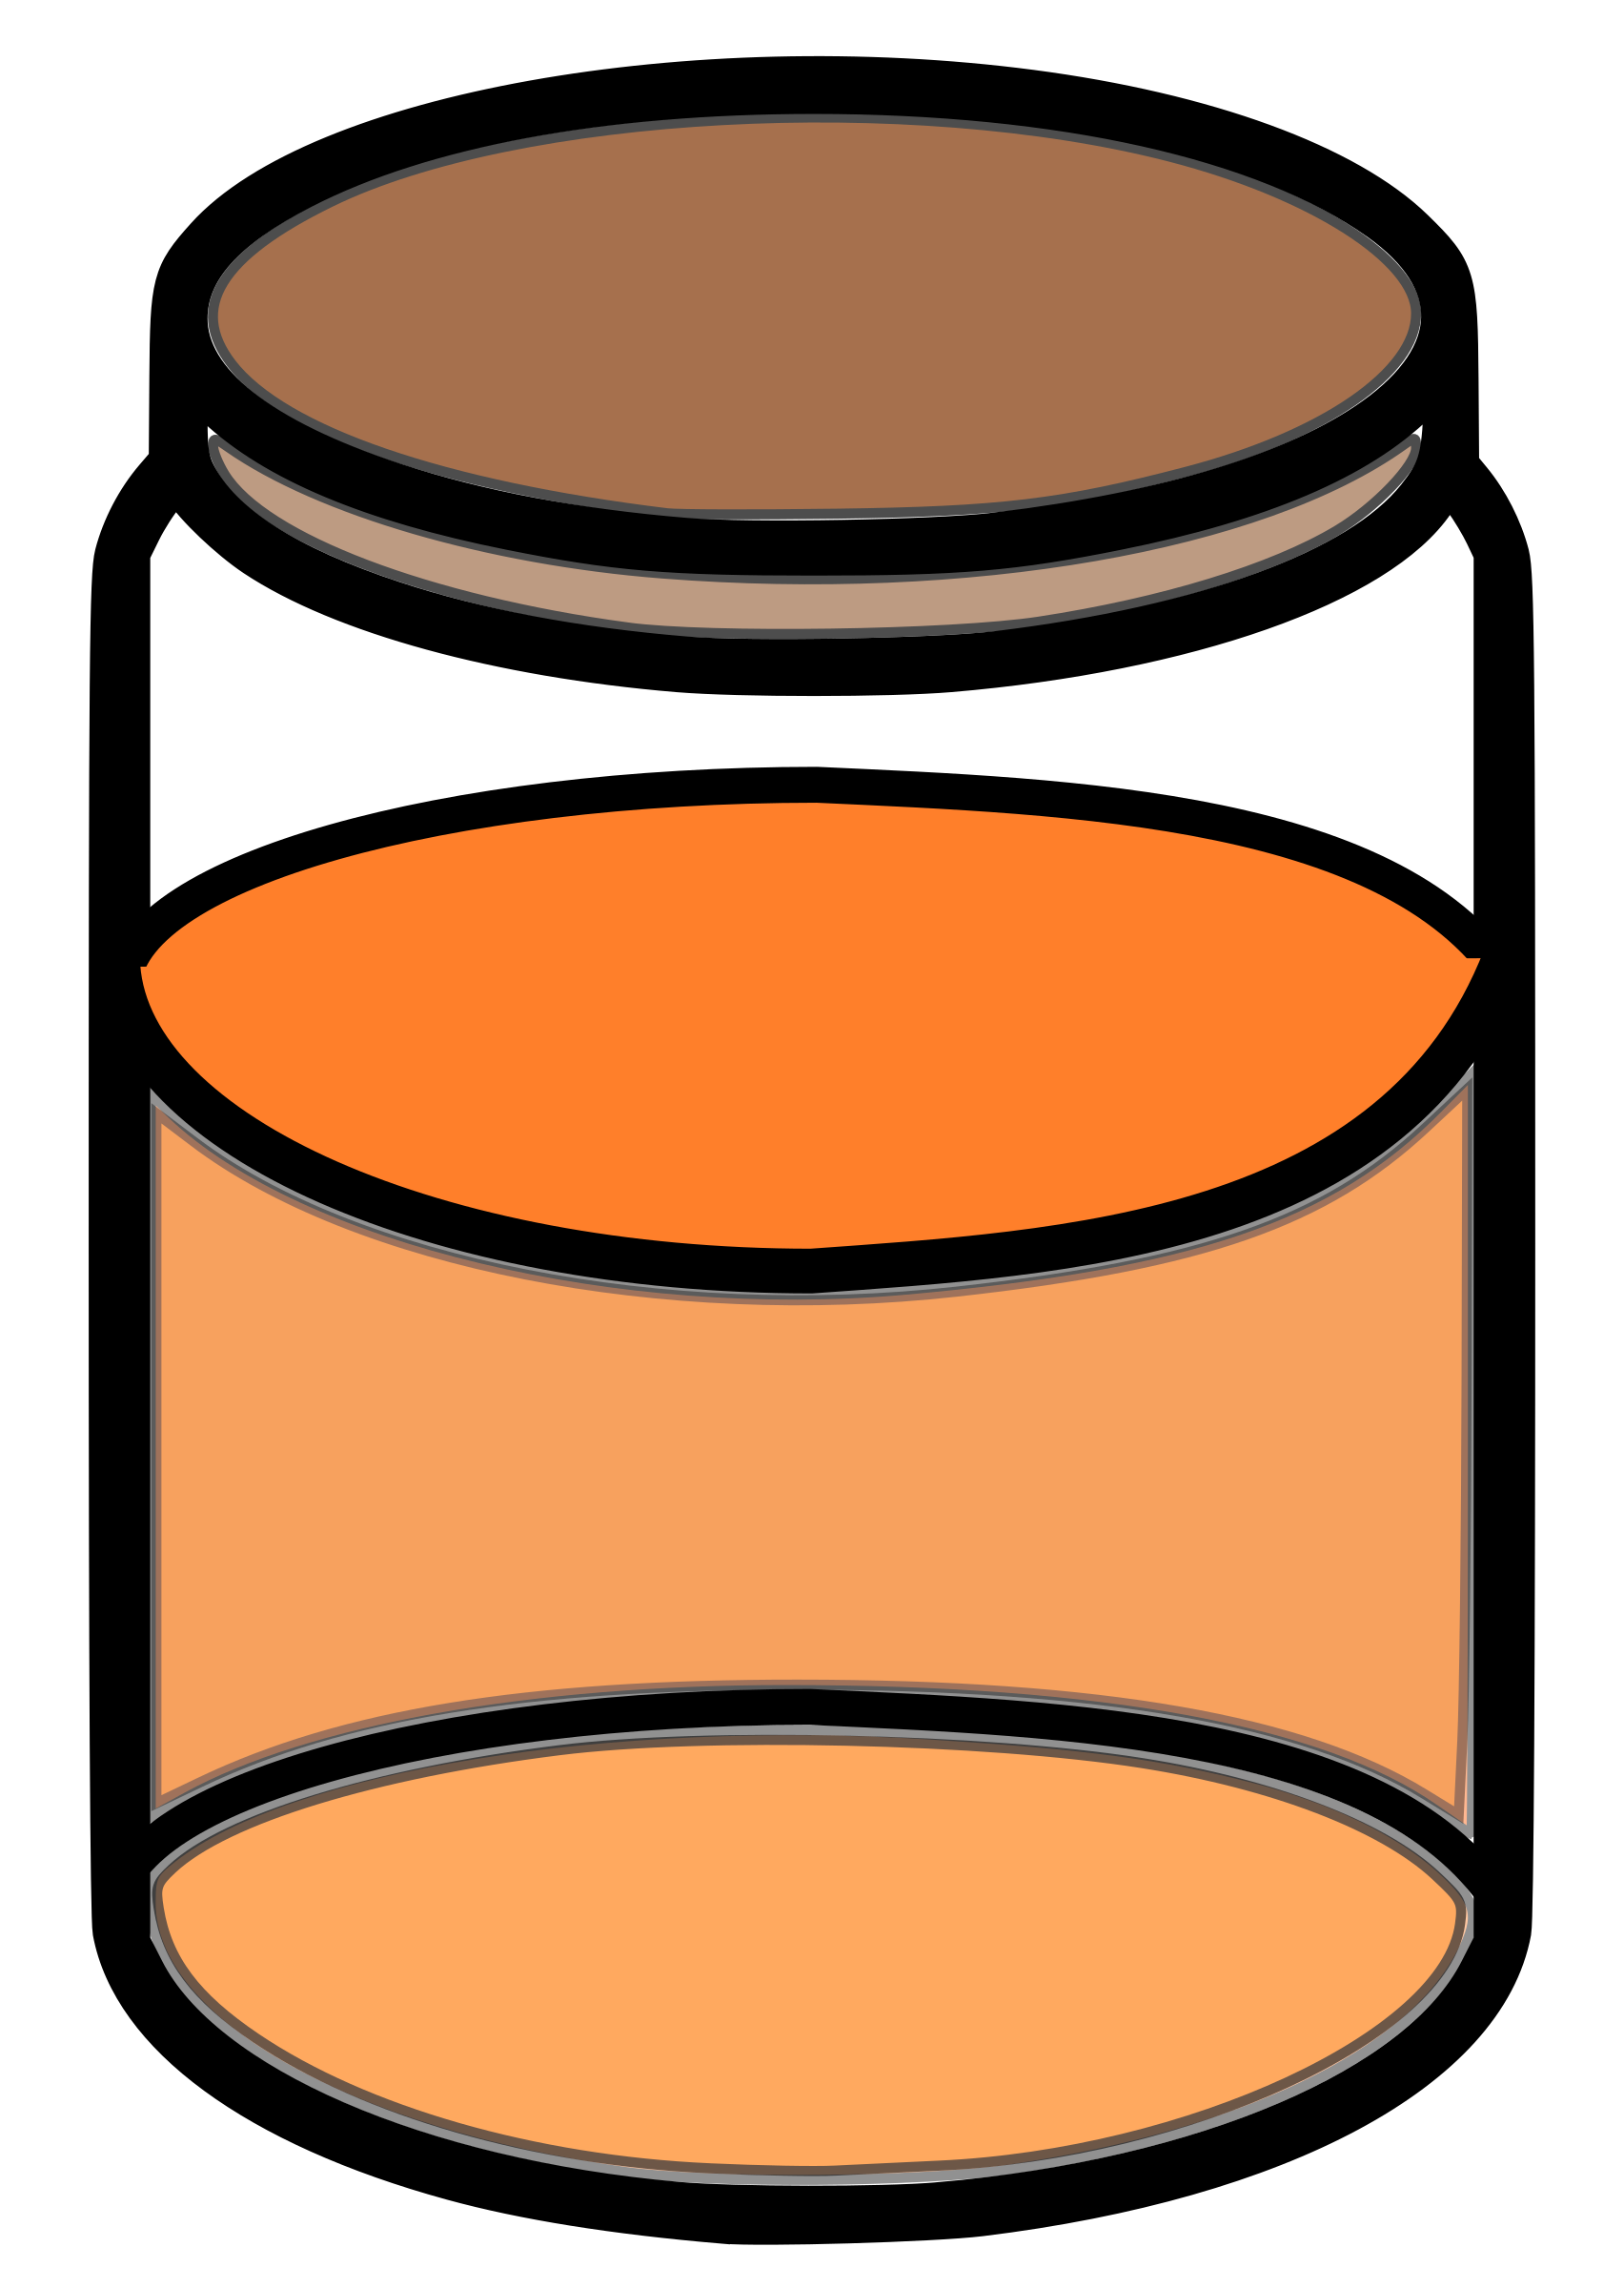 Honey Jar by Ronit